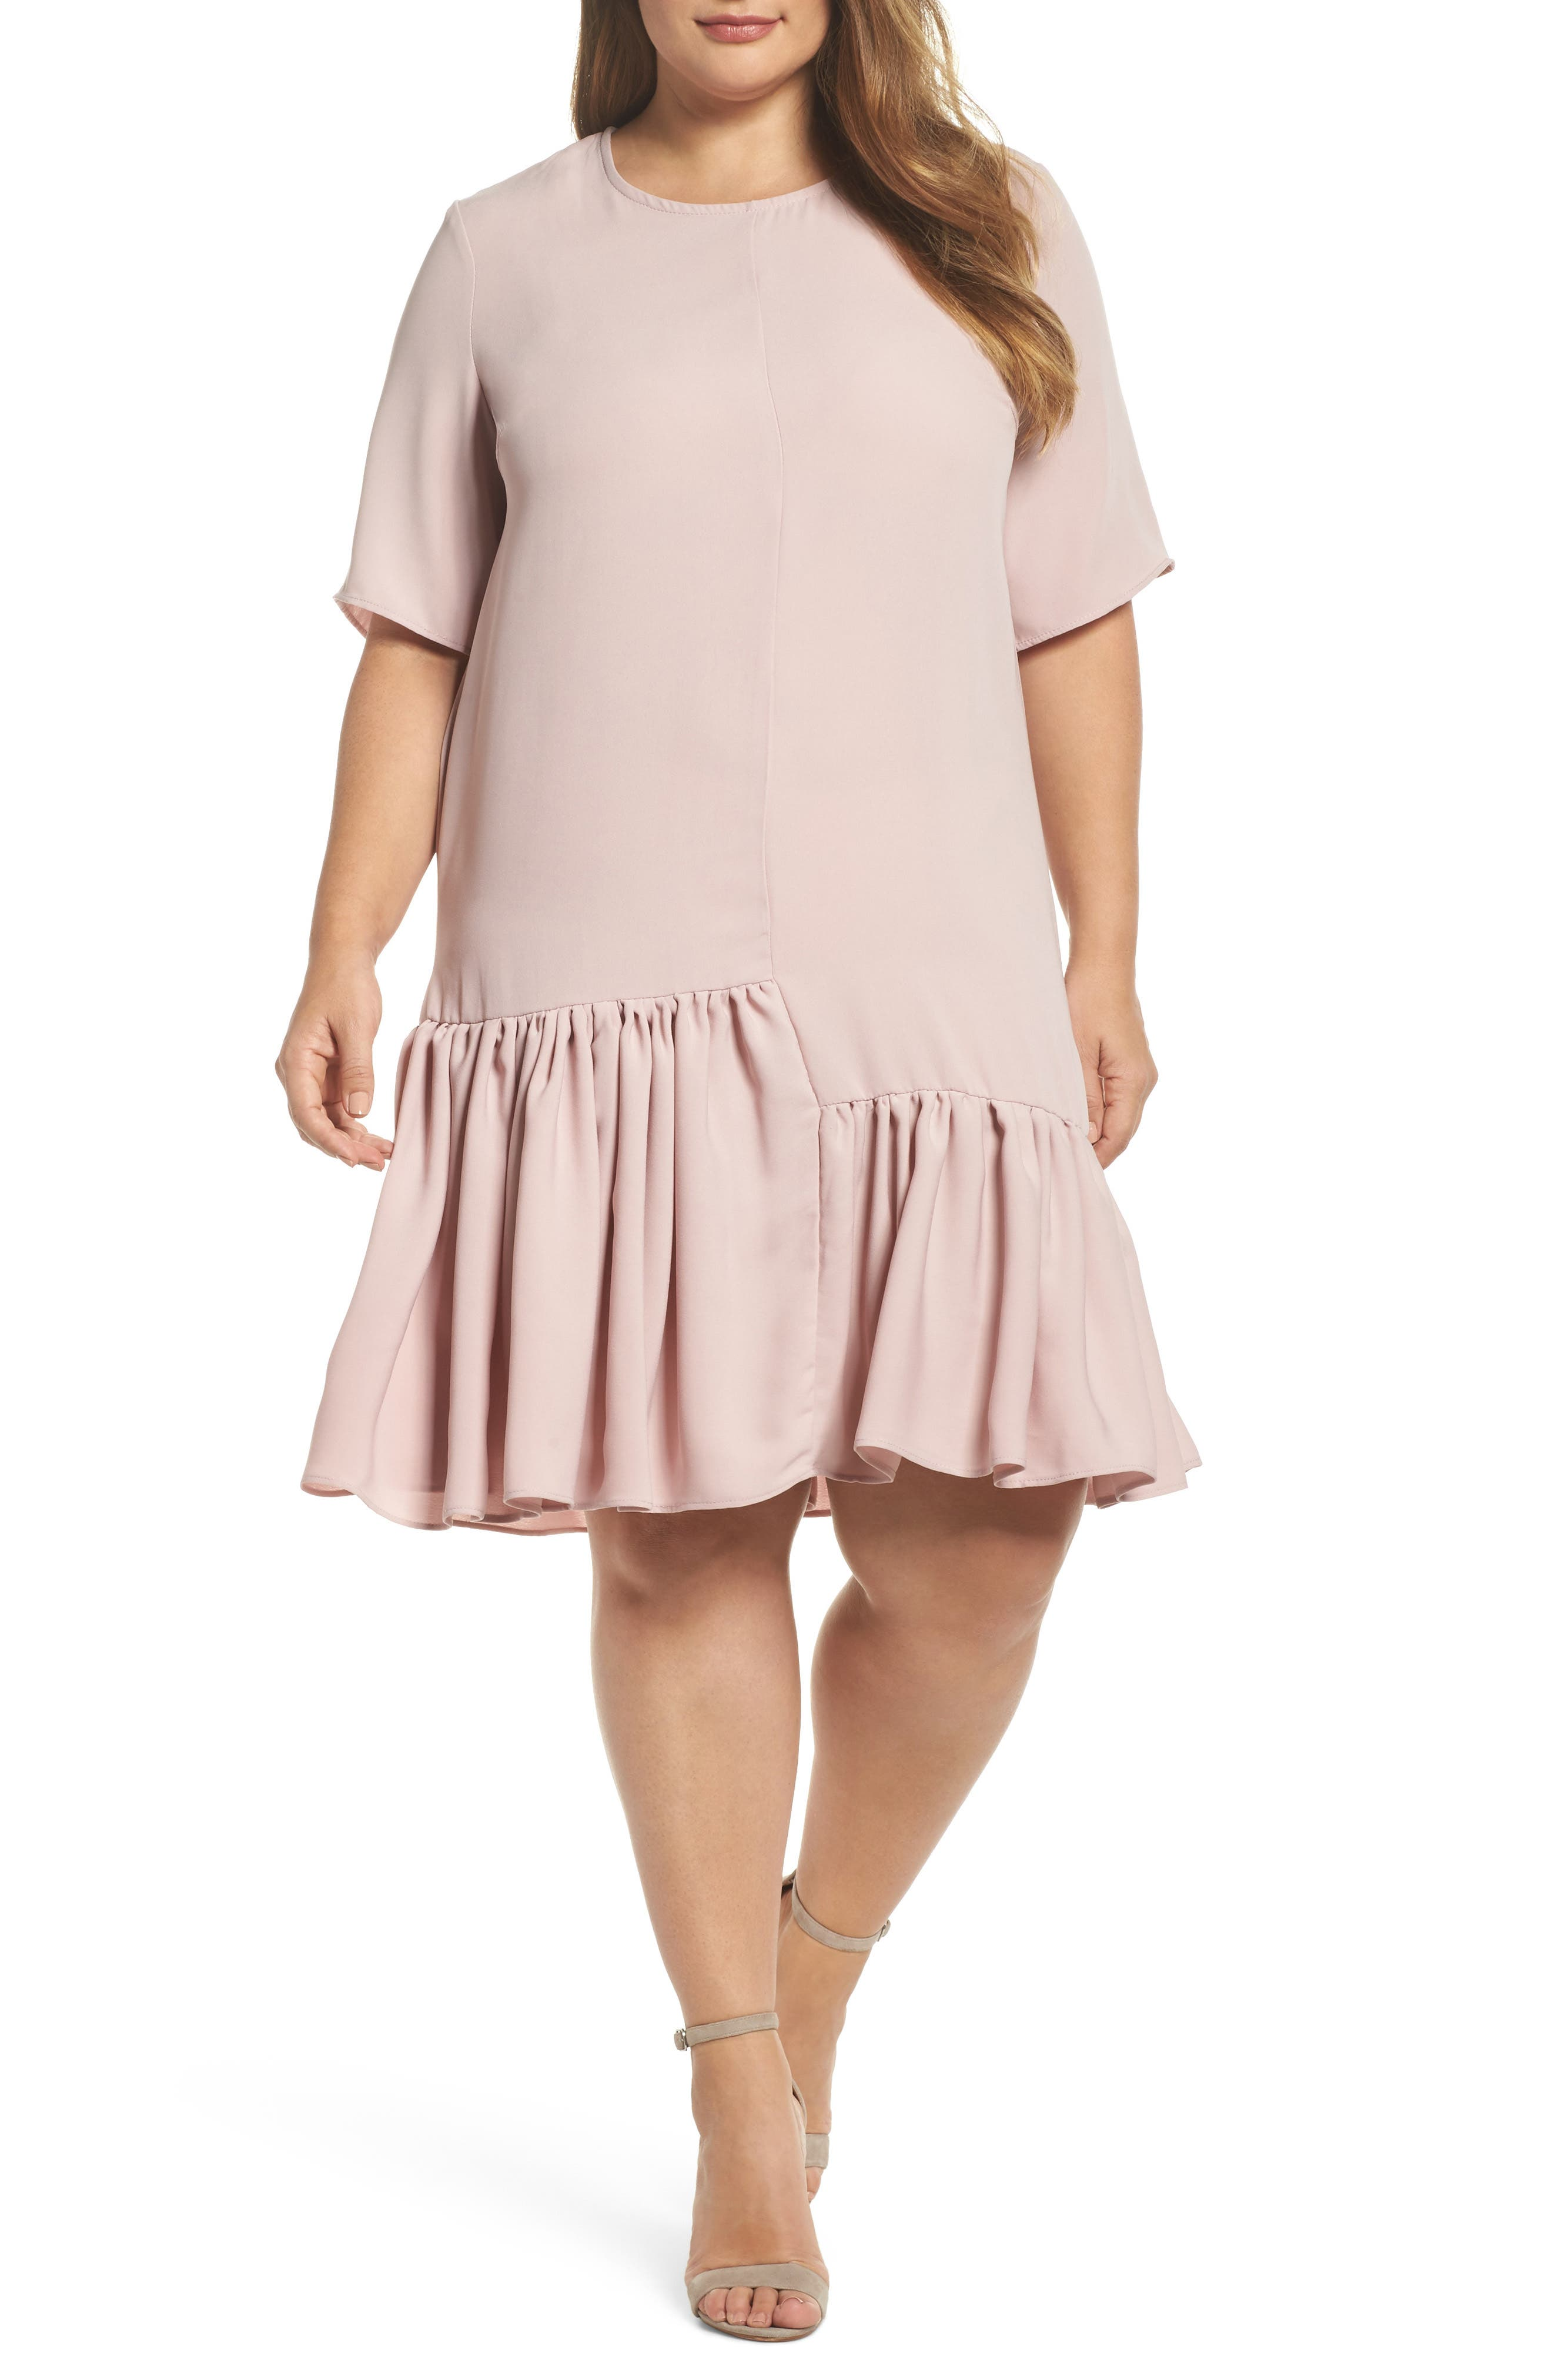 Alternate Image 1 Selected - Glamorous Asymmetrical Ruffle Shift Dress (Plus Size)